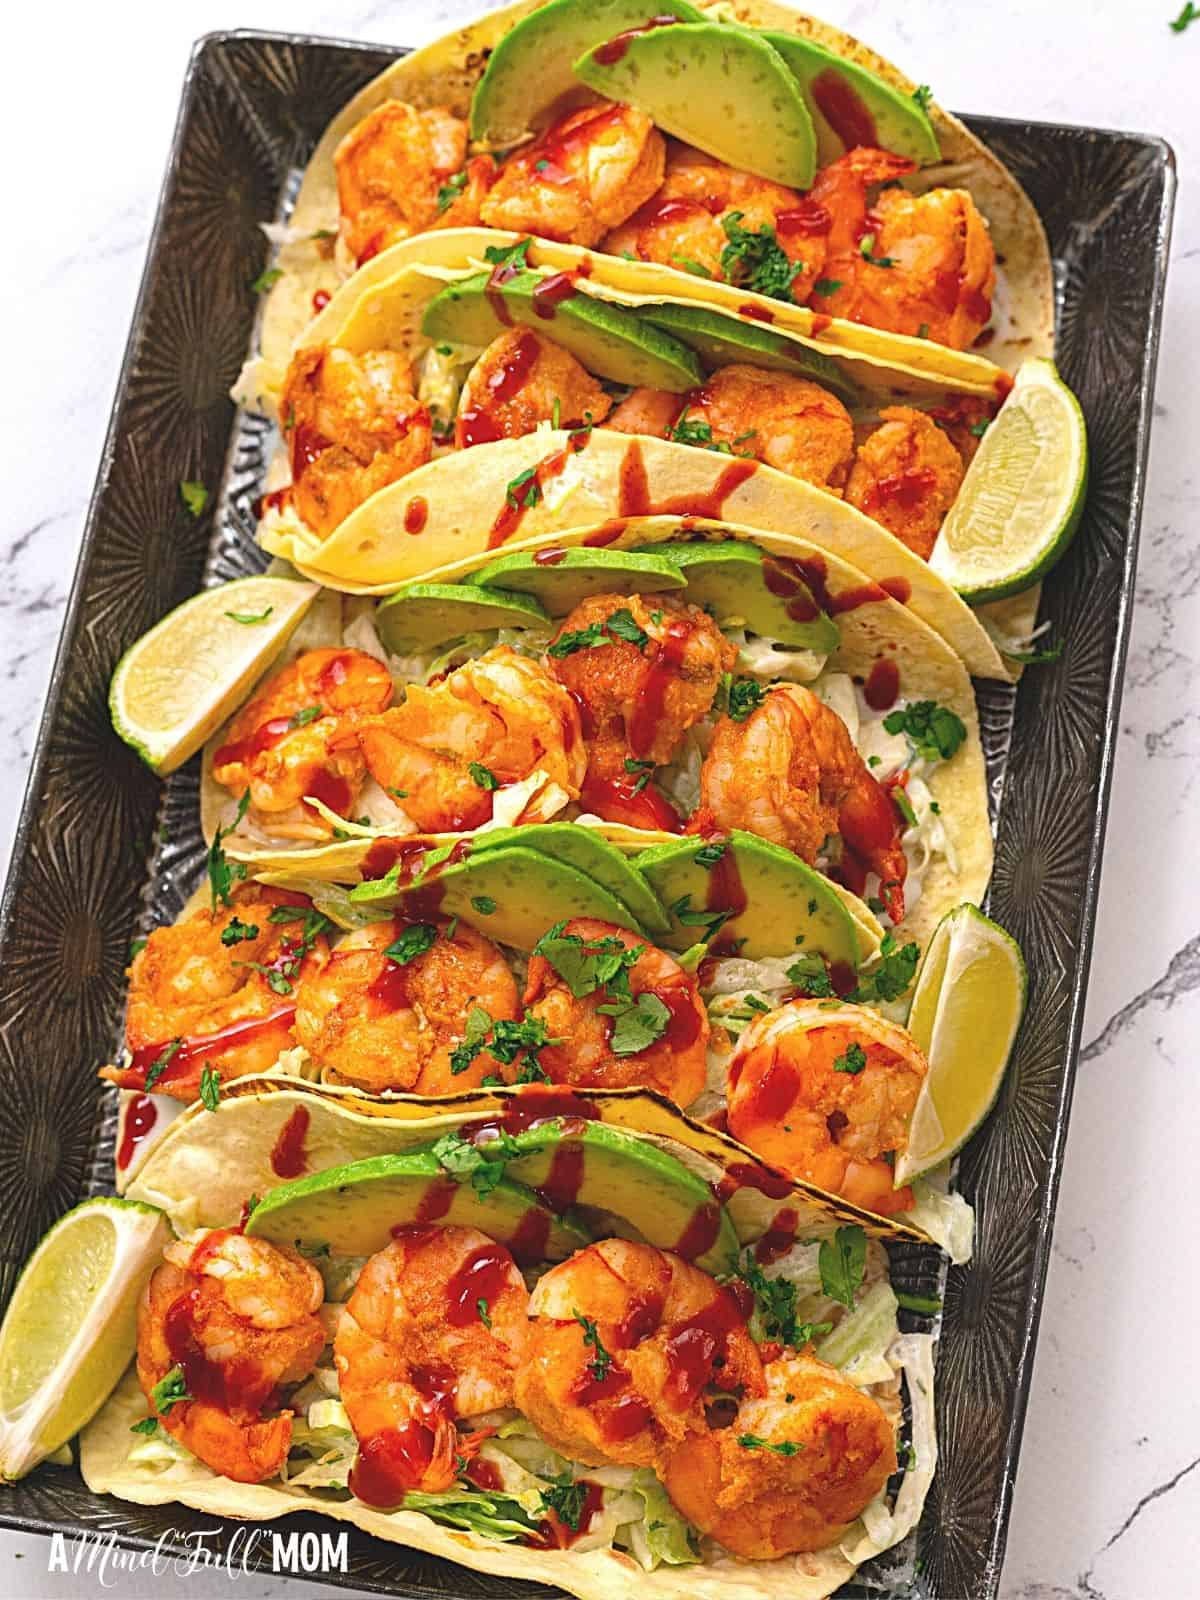 4 assembled shrimp tacos with avocado and slaw.